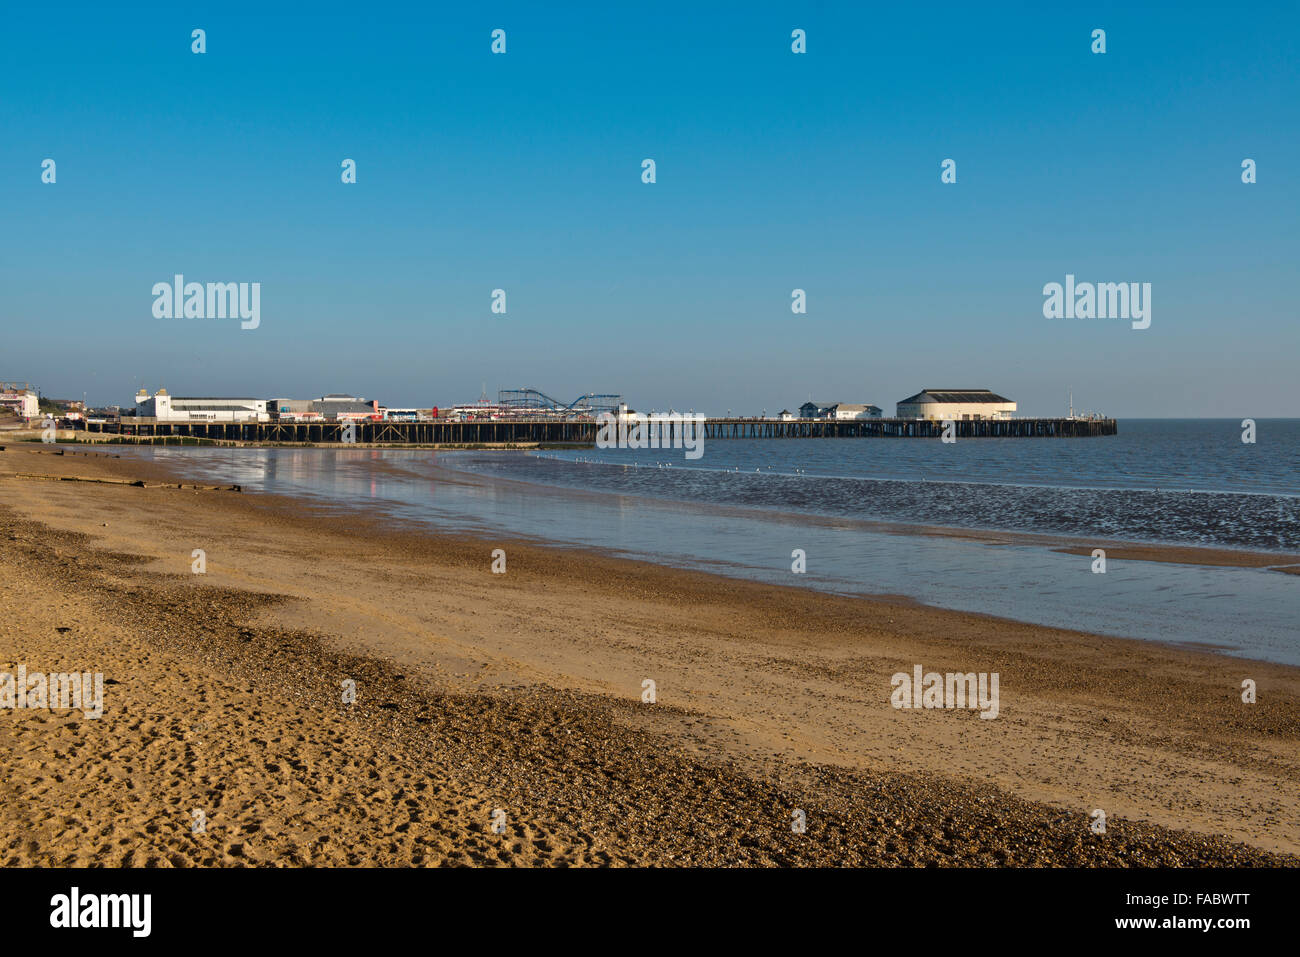 The Pier and empty beach at Clacton-on-Sea, Essex, UK. Image taken late December 2014 - Stock Image